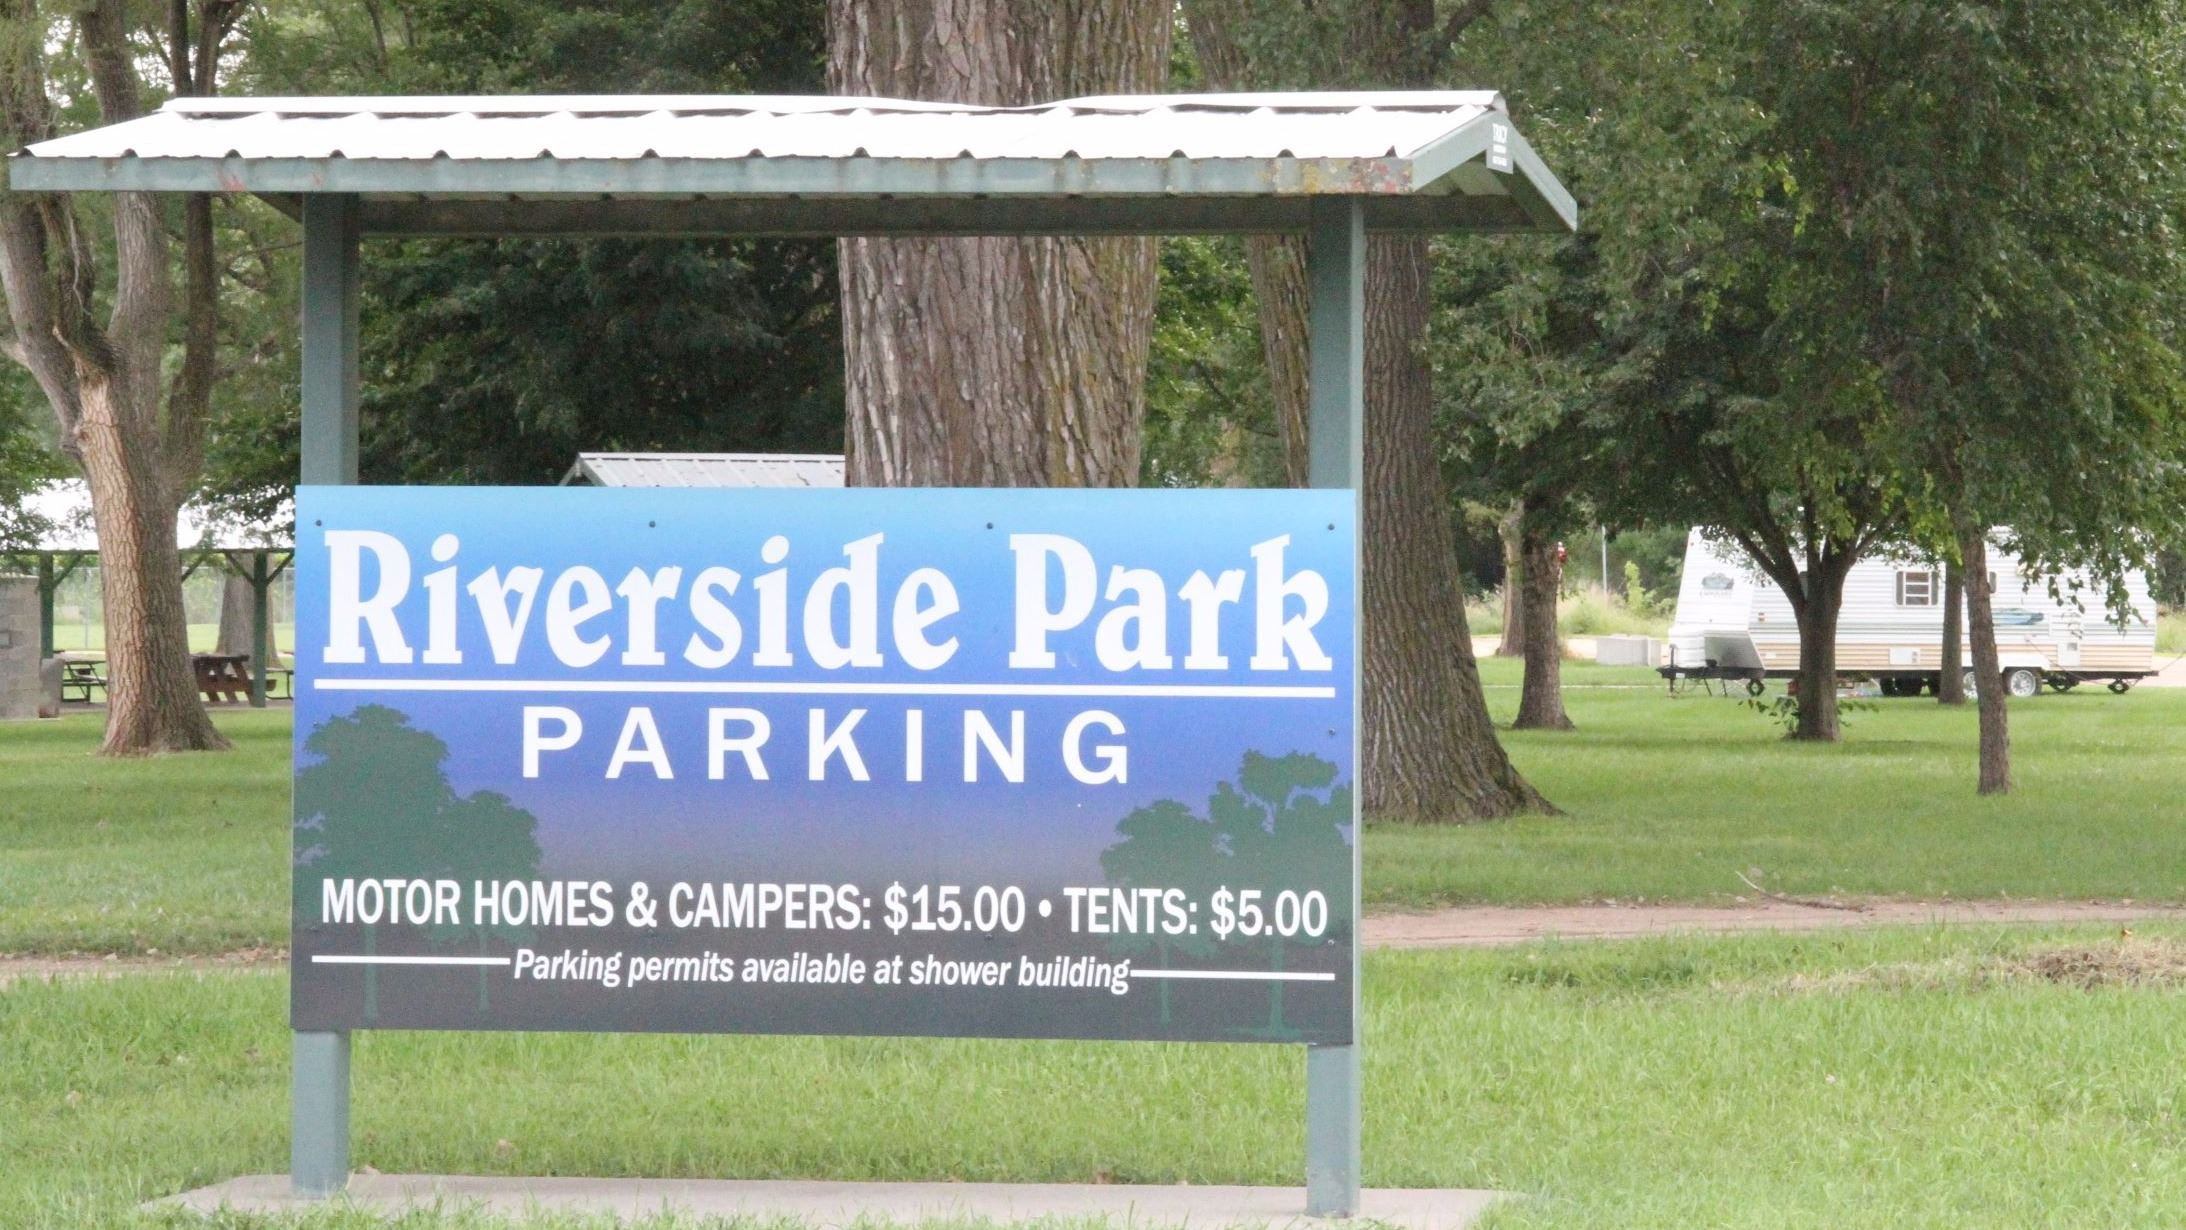 Riverside Park Parking Sign